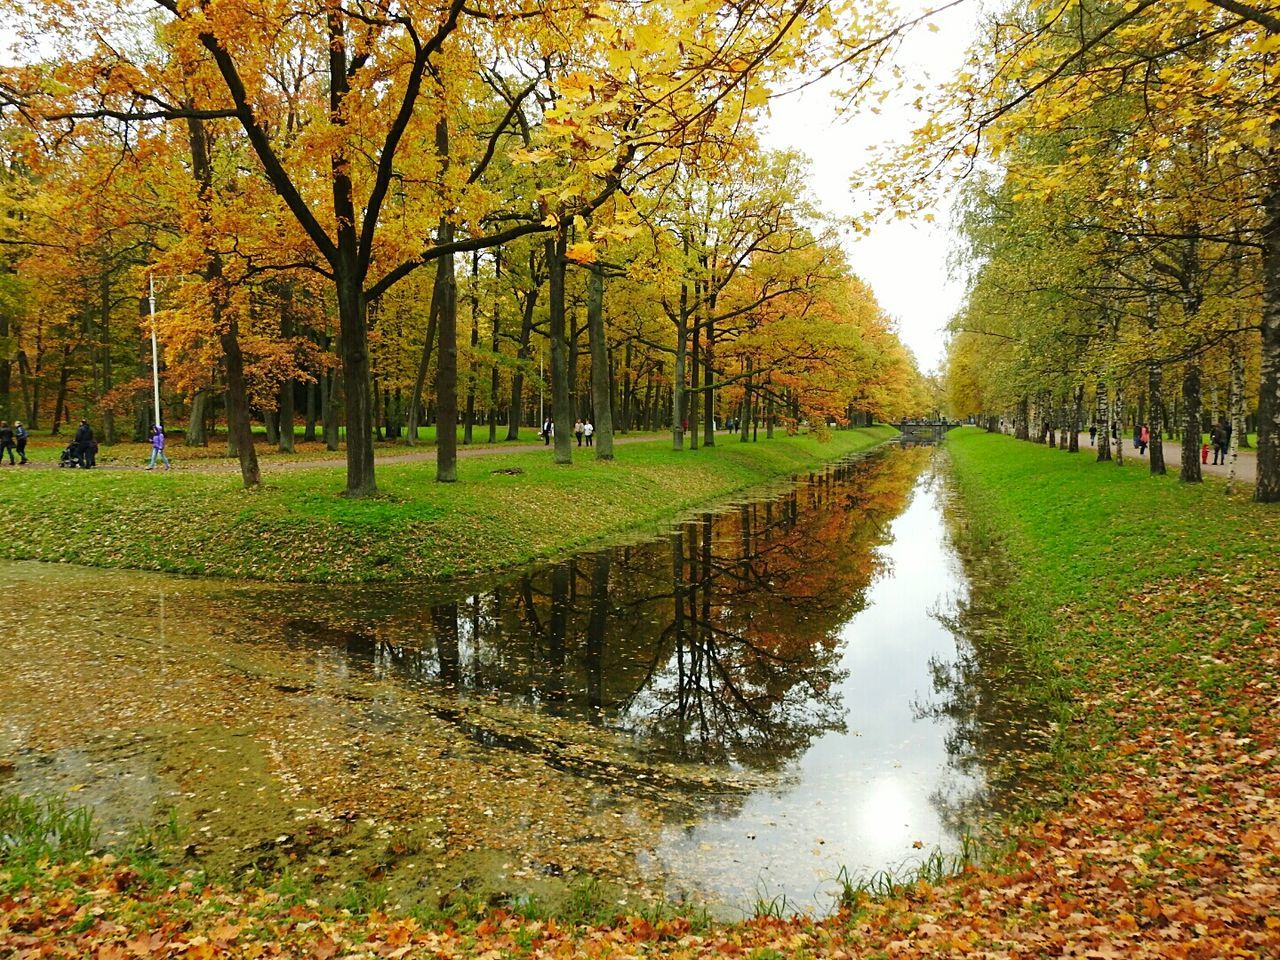 autumn, tree, nature, leaf, change, beauty in nature, water, scenics, tranquility, reflection, grass, growth, tranquil scene, outdoors, day, park - man made space, no people, lake, landscape, branch, sky